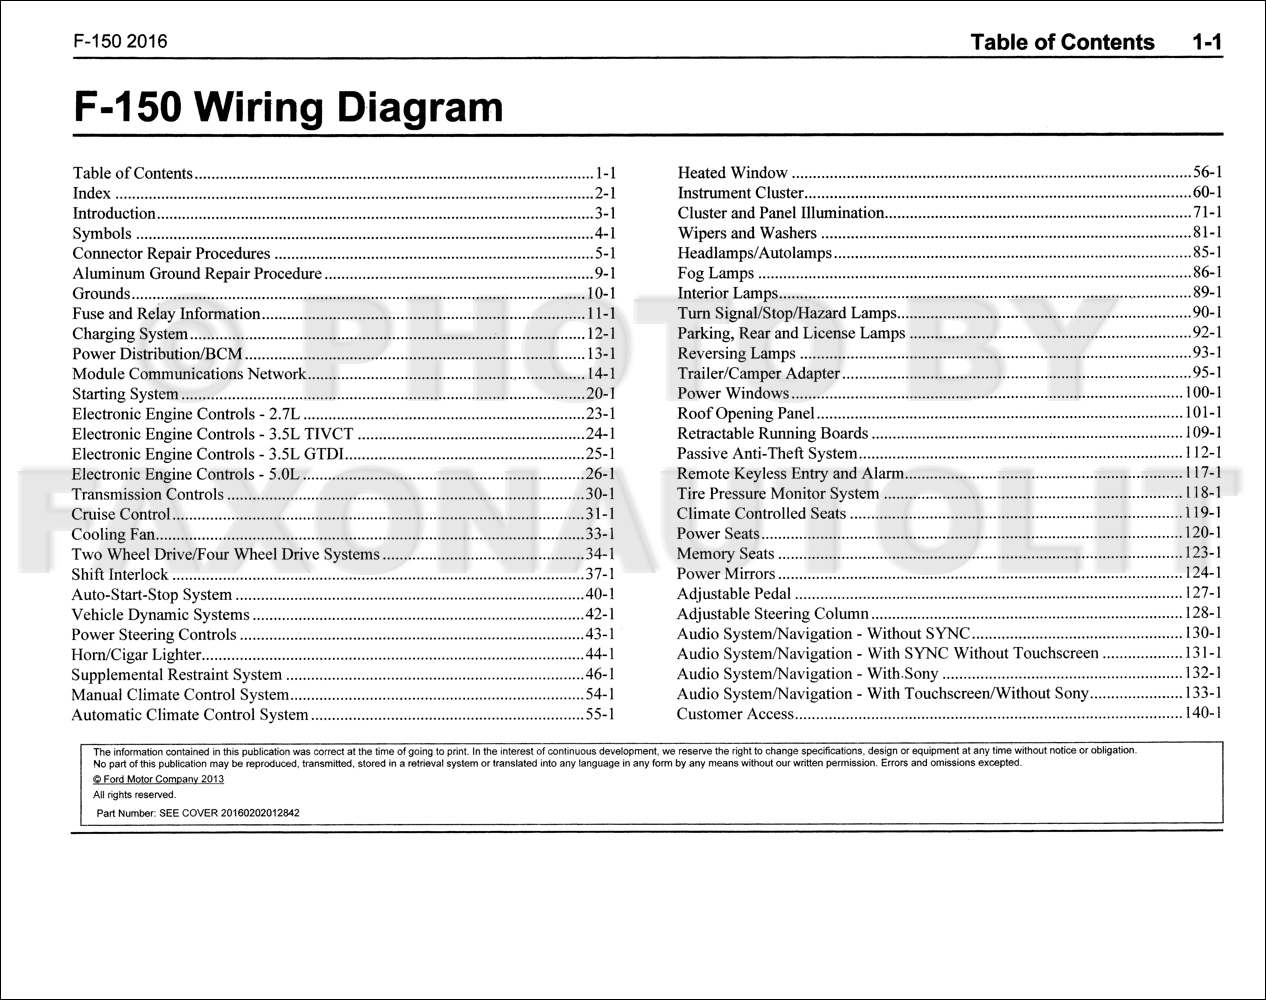 1997 Ford F150 Stereo Wiring Diagram Manual Guide